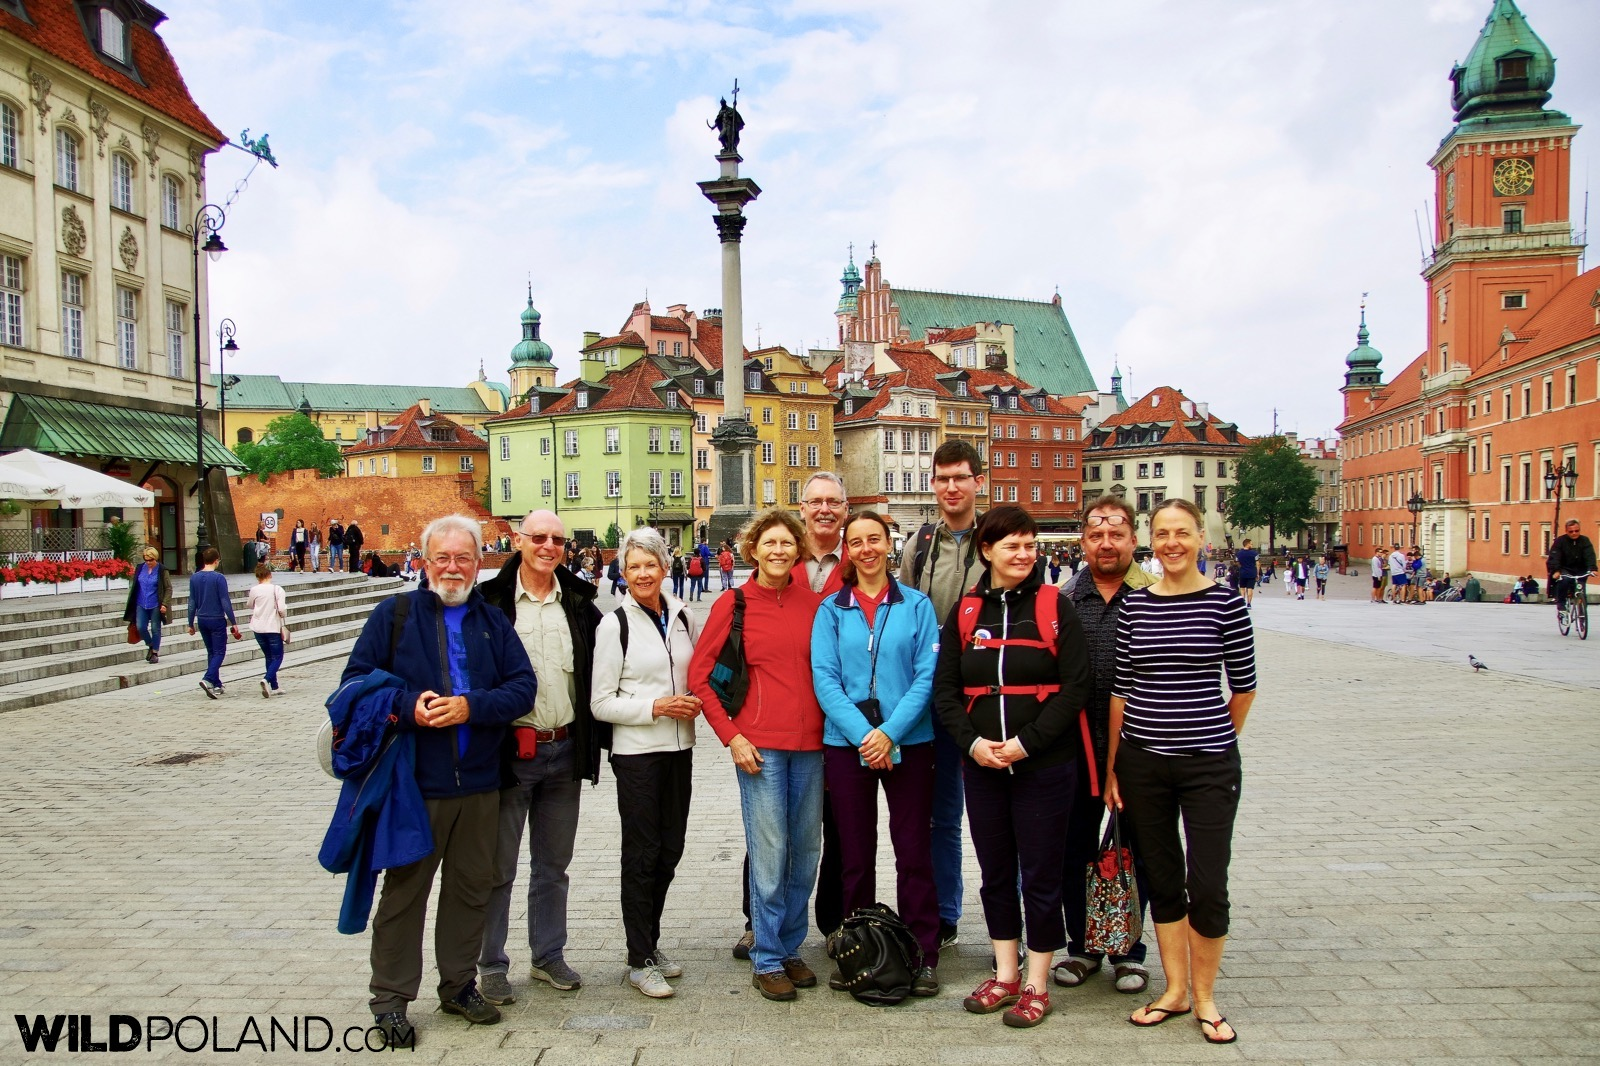 Our happy group at the Old Town in Warsaw